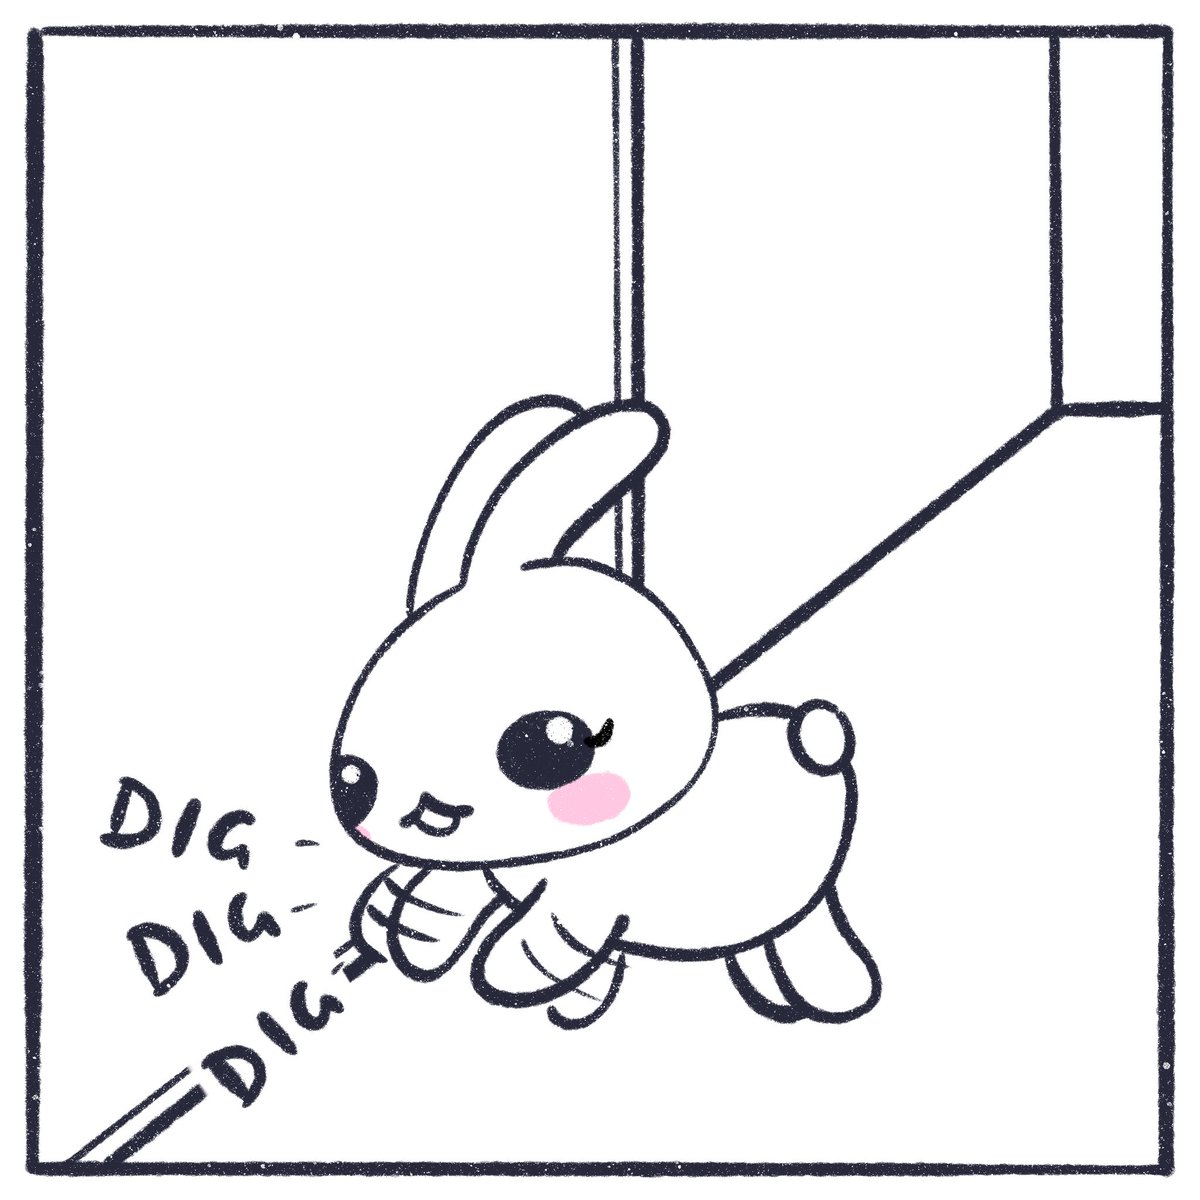 Day 17/100: I've been down with a bad cold/flu the last couple of days so I've put a bit more time into today's comic to make up for the missing days 😅   #the100dayproject #100thingsmybunniesdo #IndecisiveRabbits #DailyComic https://t.co/k0A2bnjoW4